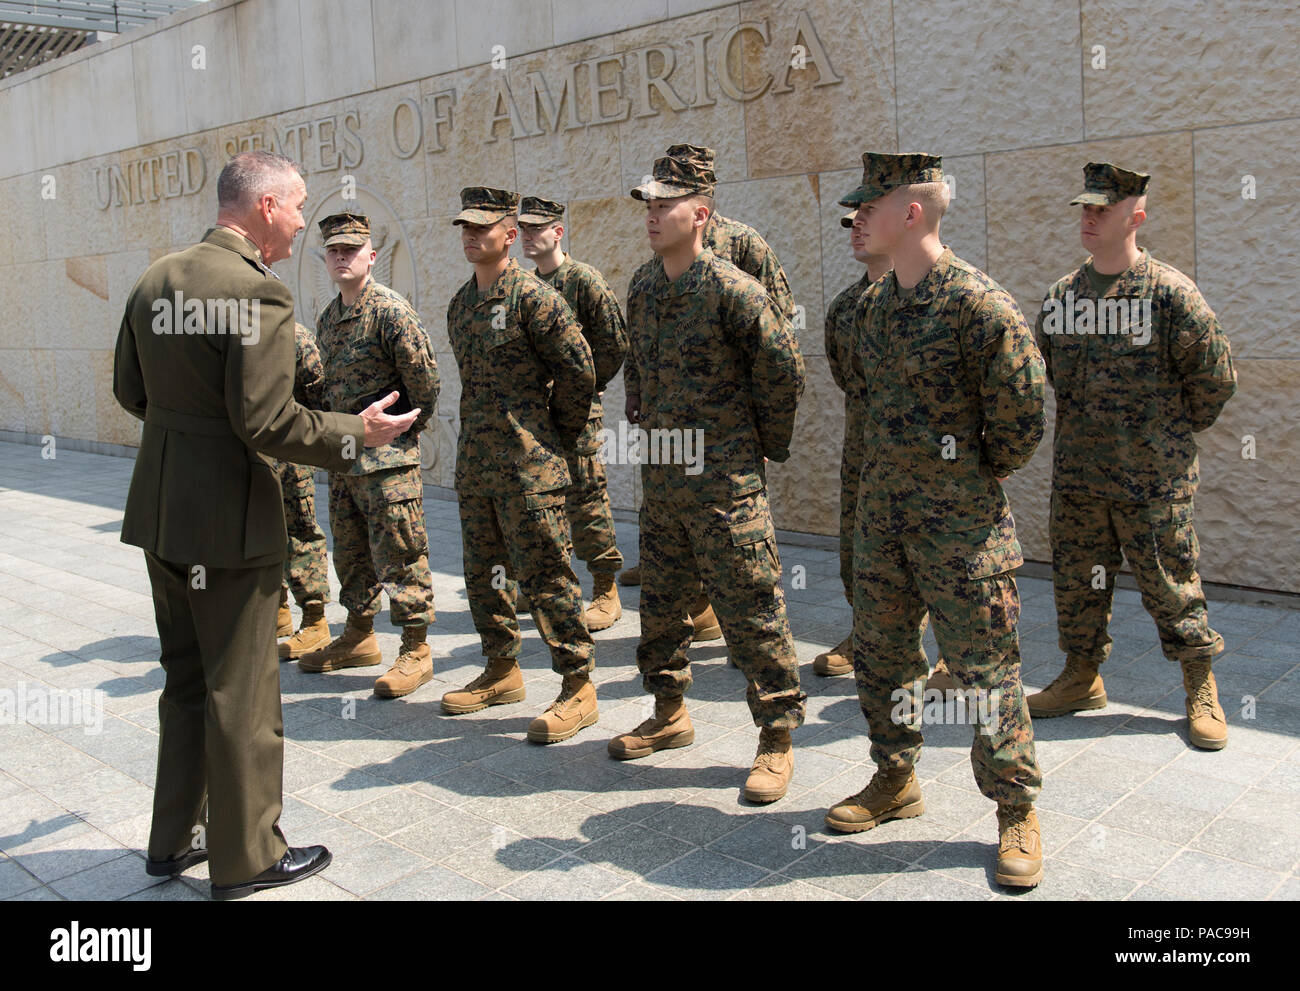 U.S. Marine Gen. Joseph F. Dunford Jr., chairman of the Joint Chiefs of Staff, meets with Marines assigned to the Marine Security Detachment at the U.S. Embassy in Bogota, Colombia, March 10, 2016. Dunford met with senior U.S. and Colombian military and civilian leaders for his first visit to Colombia as Chairman. (DoD Photo by Navy Petty Officer 2nd Class Dominique A. Pineiro) - Stock Image